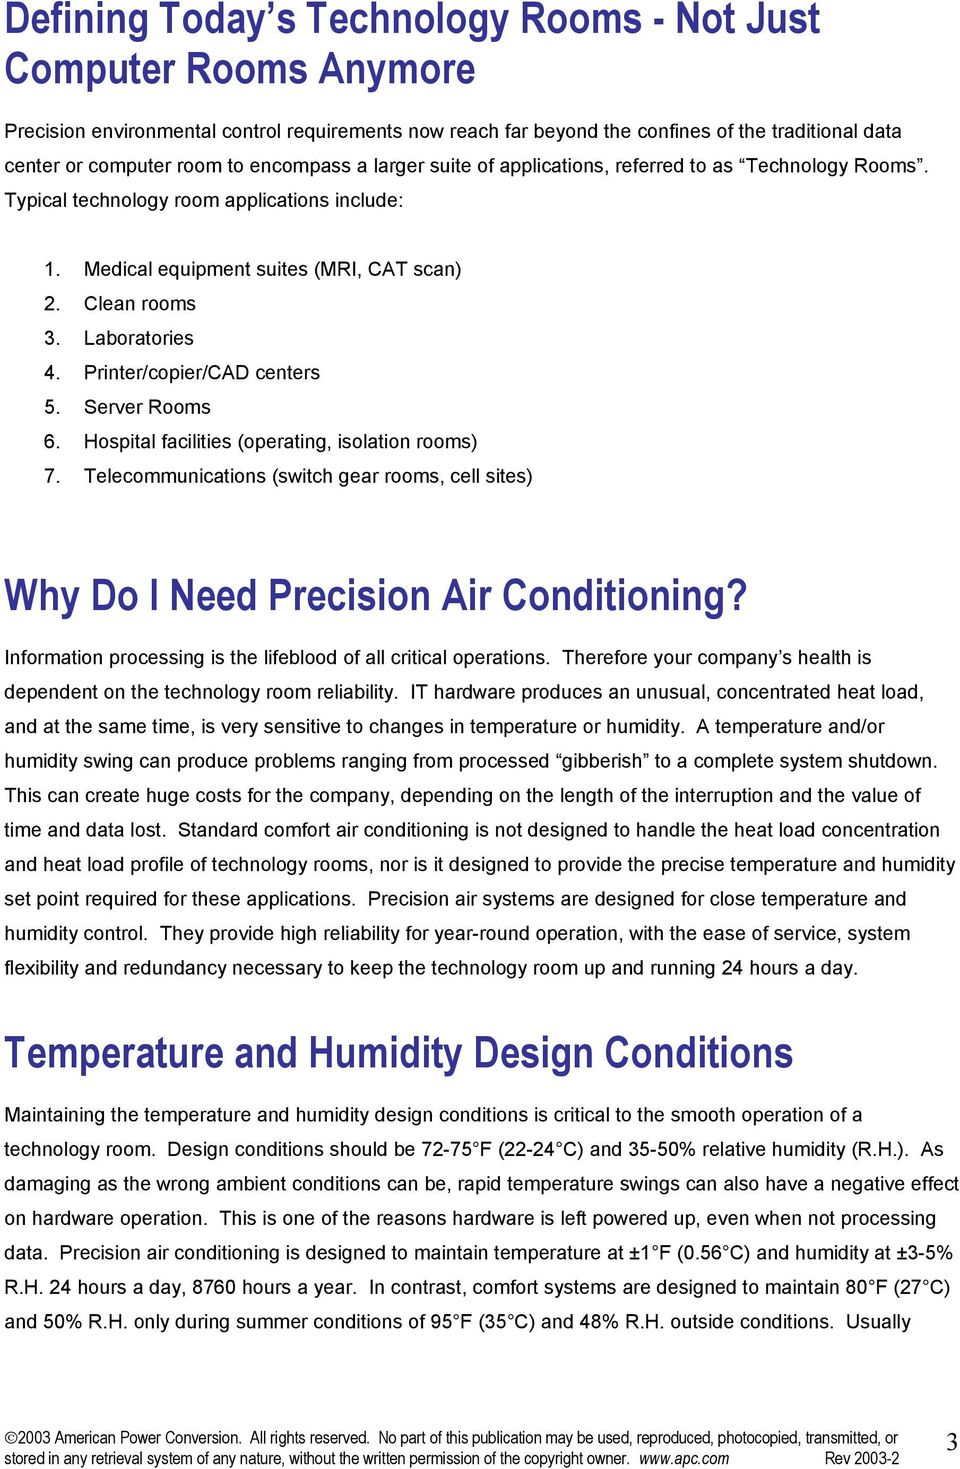 Printer/copier/CAD centers 5. Server Rooms 6. Hospital facilities (operating, isolation rooms) 7. Telecommunications (switch gear rooms, cell sites) Why Do I Need Precision Air Conditioning?